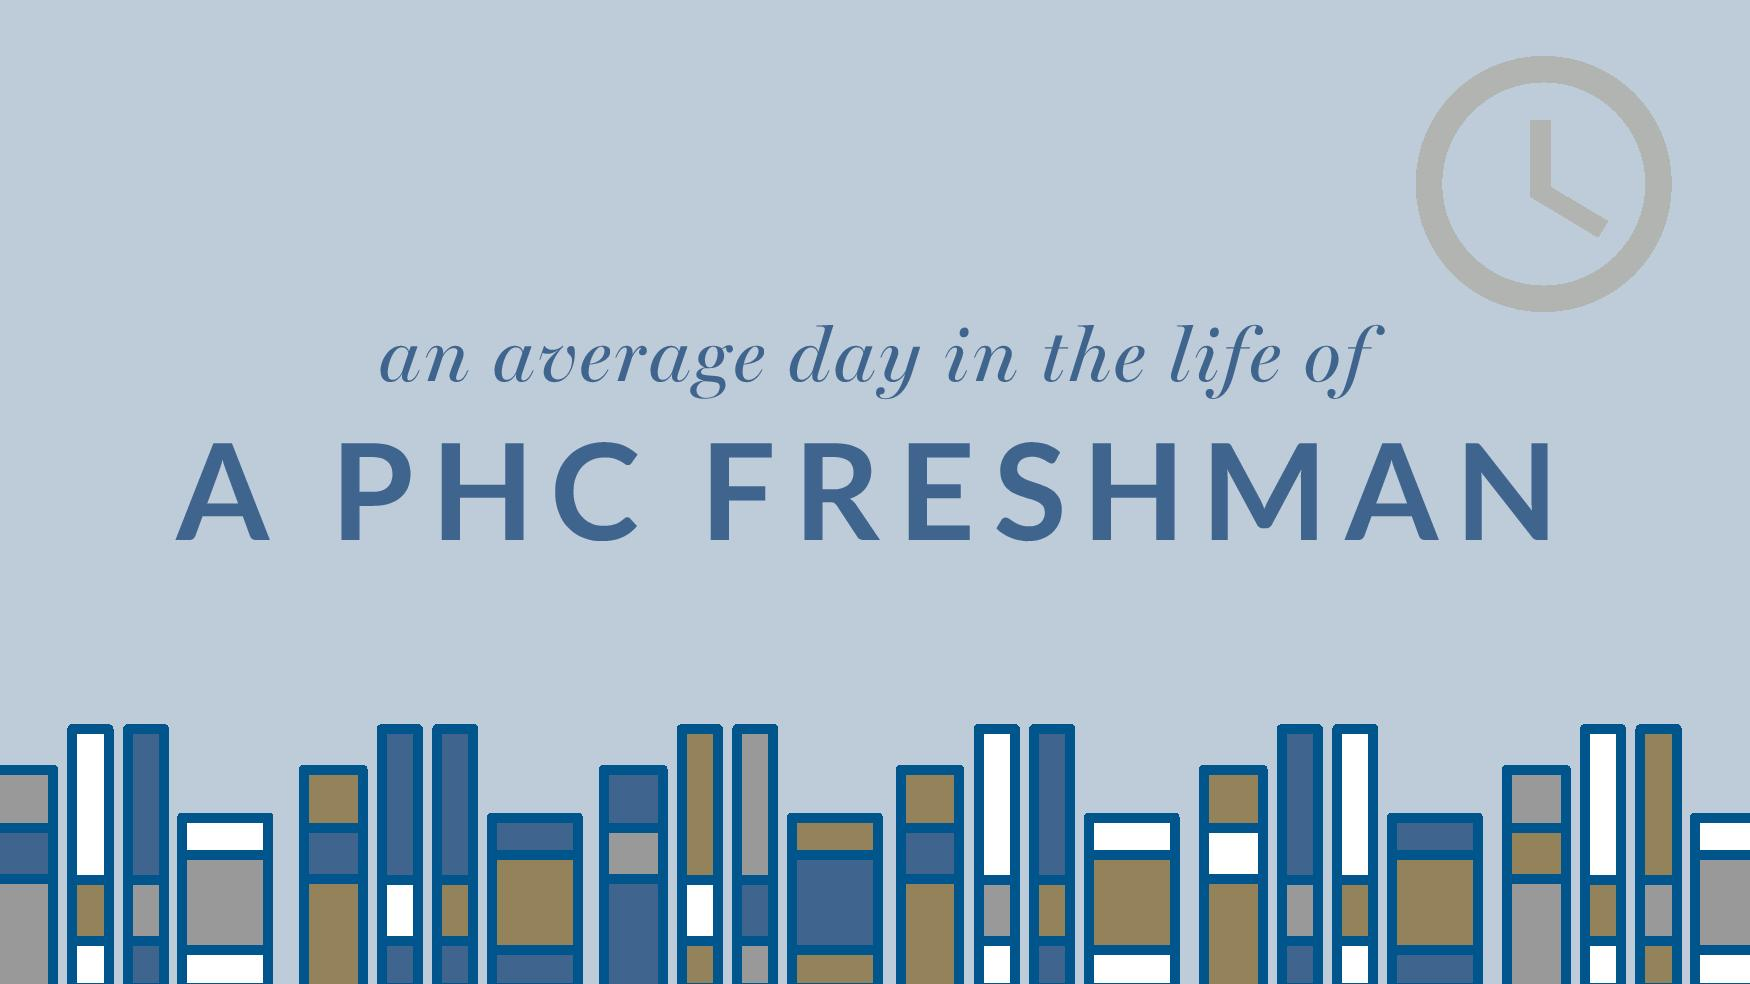 A Day in the Life of a PHC Freshman (1)-page-001.jpg